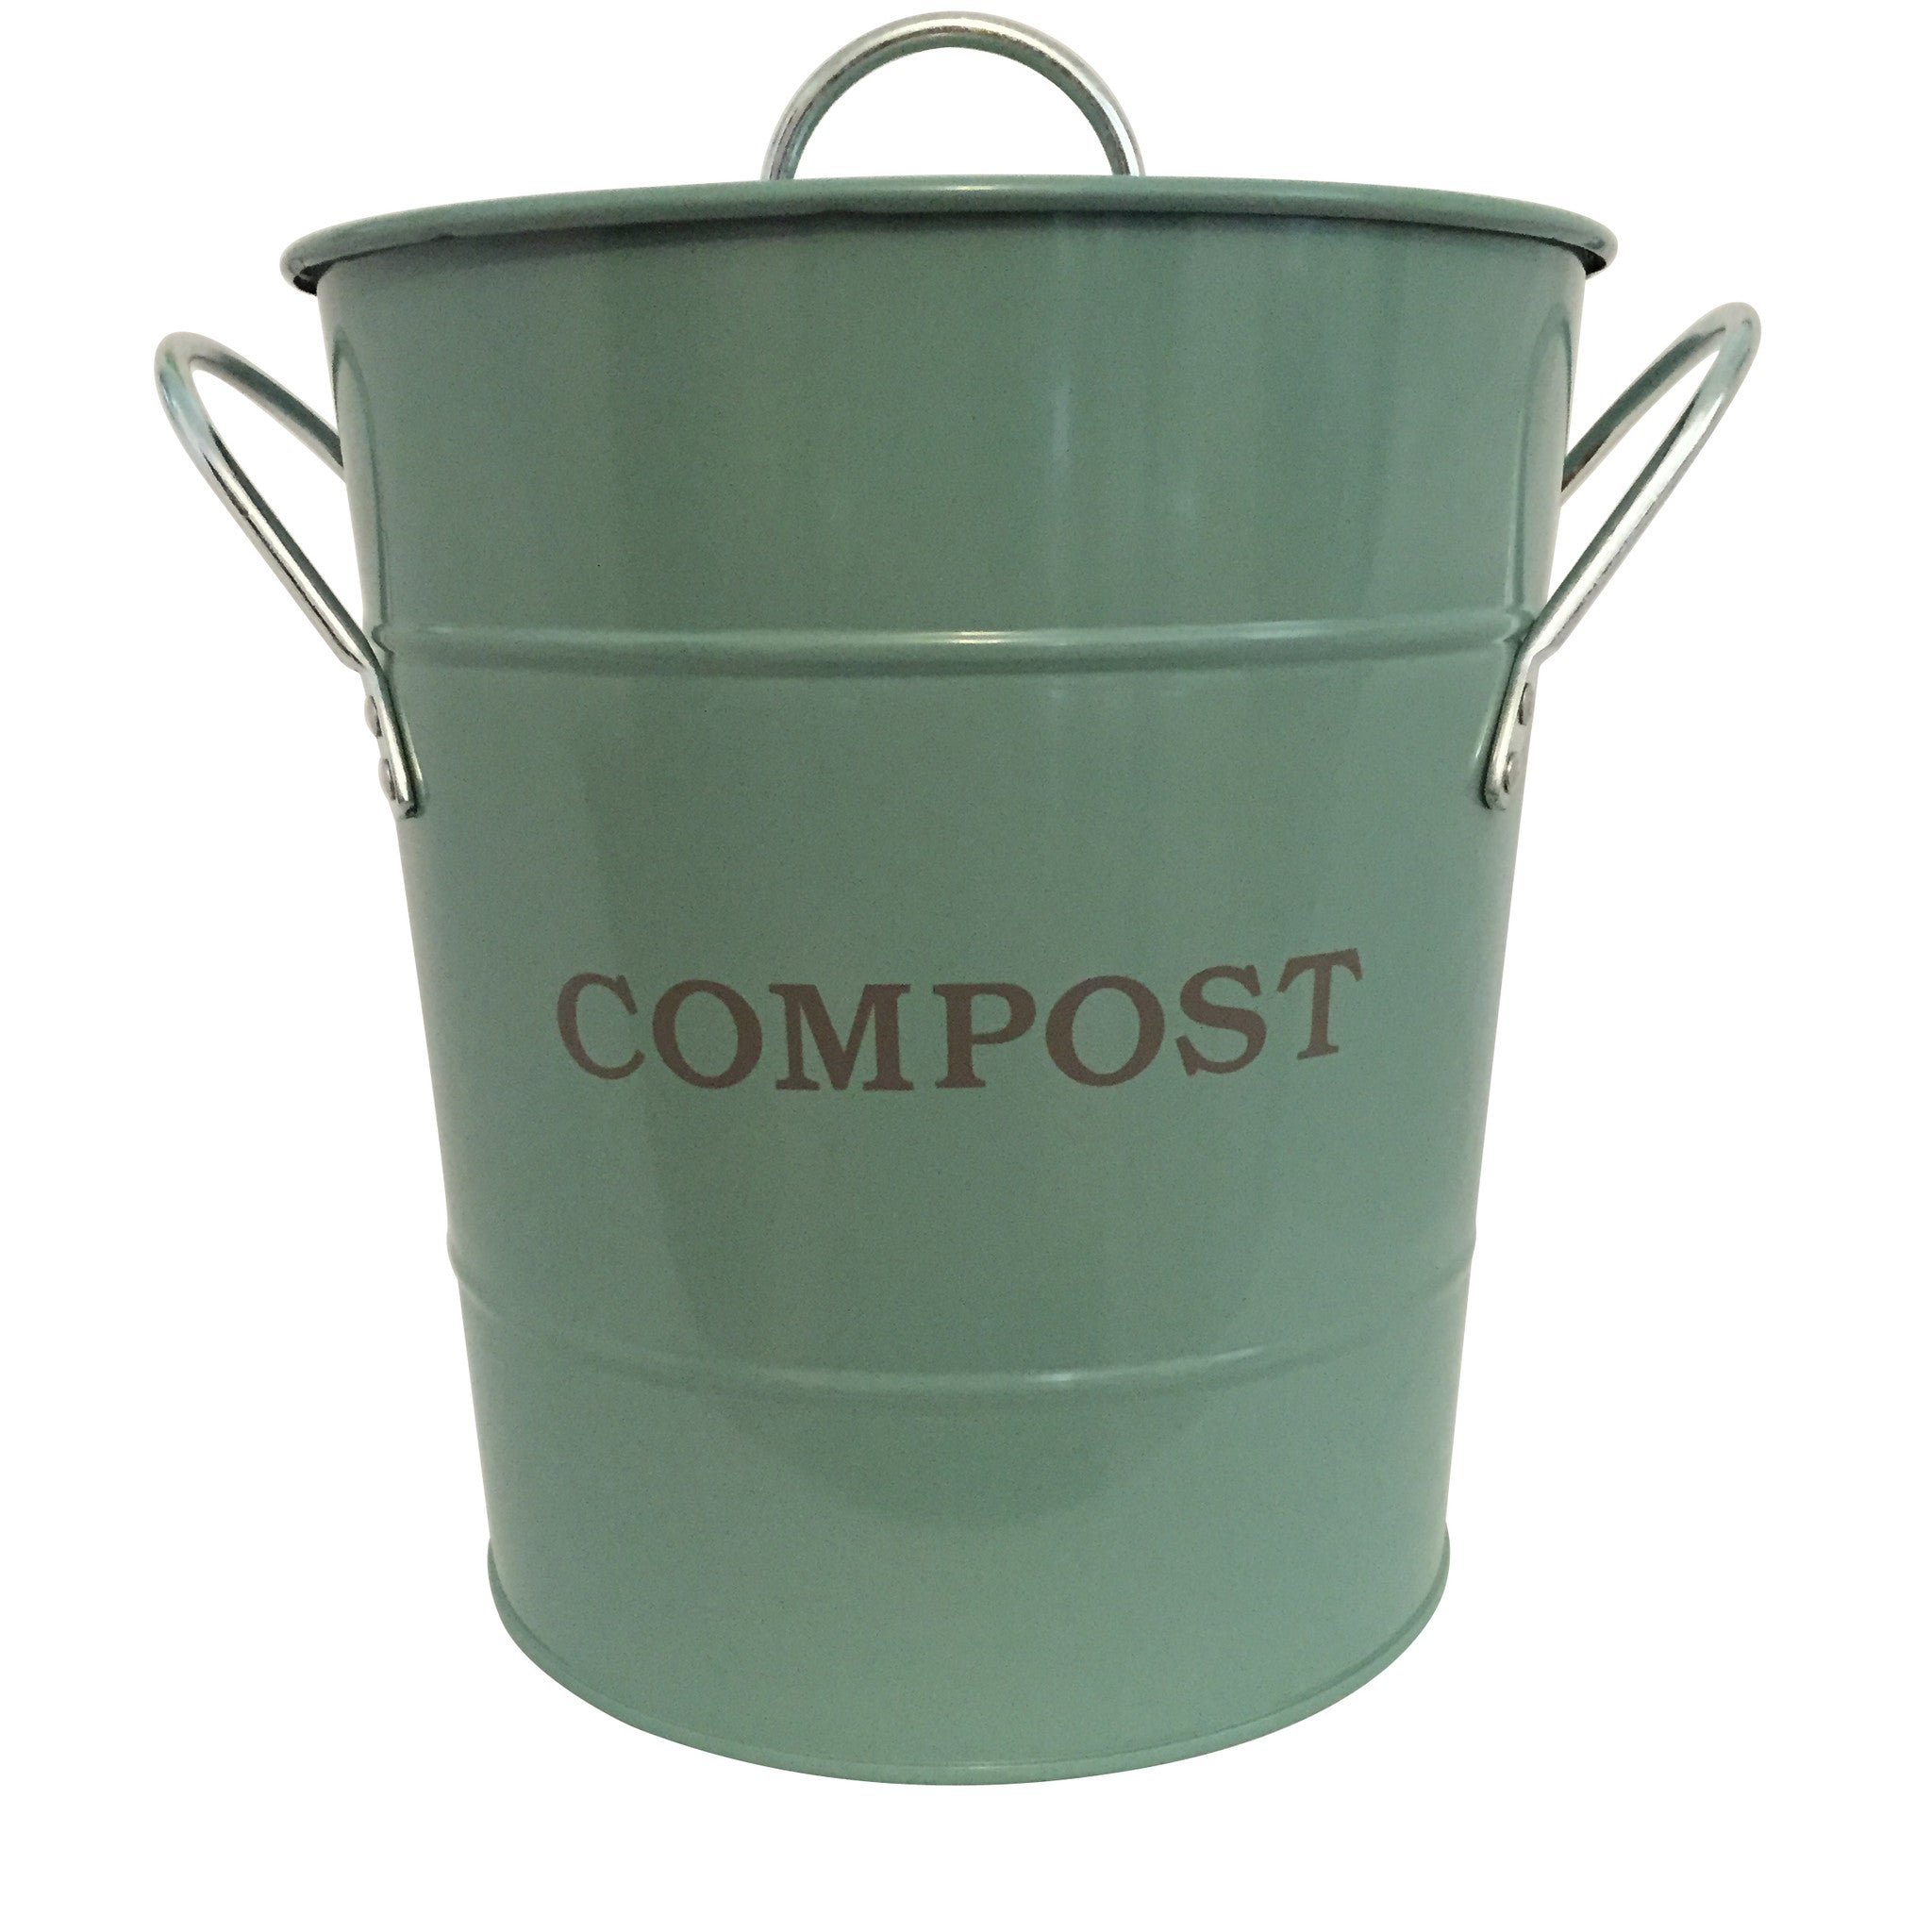 Compost Bucket - Sage Green - The Potting Shed Garden Tools